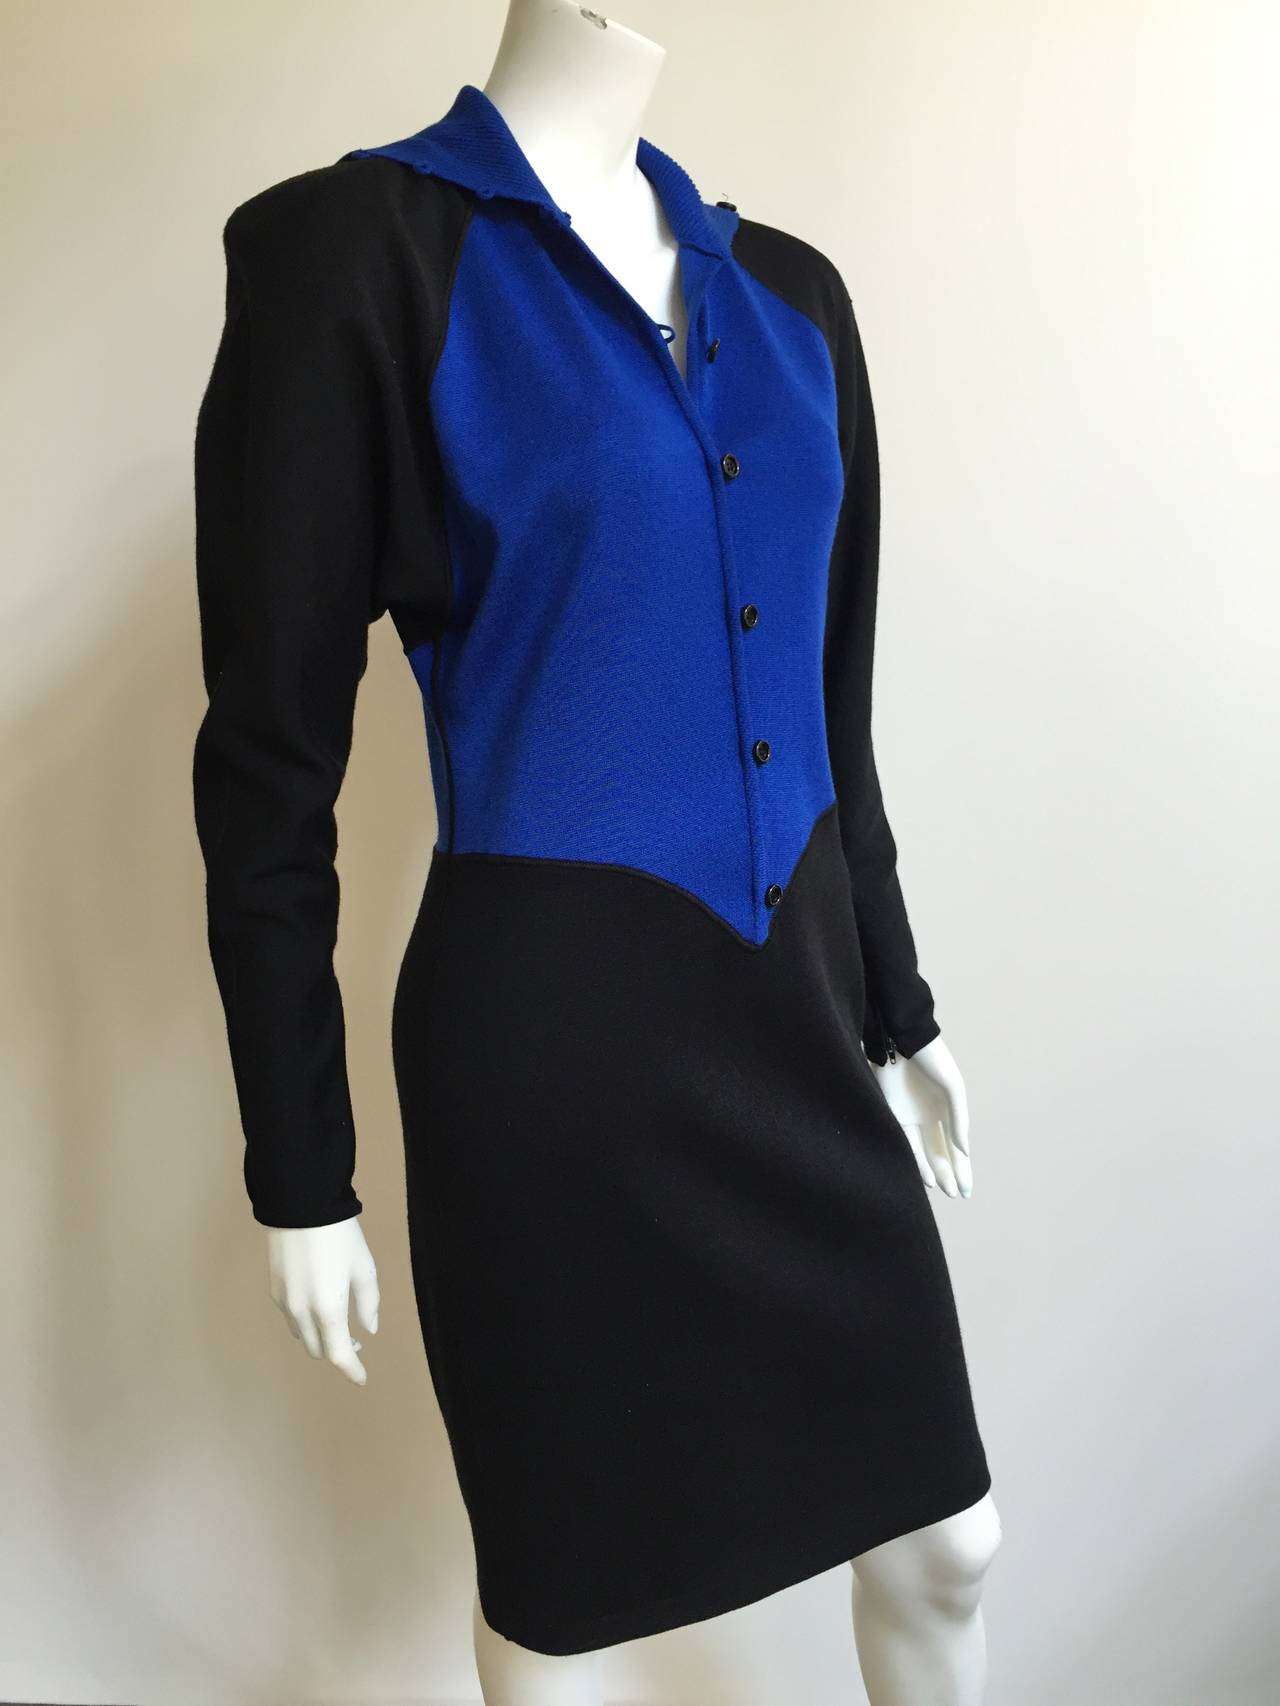 Emanuel Ungaro Parallele Paris 1980s knit dress with dolman sleeves is a vintage size 12 but fits like a modern USA size 8 ( Please see & use measurements to properly measure your lovely body).  Button up turtle neck. Shoulder pads as shown in